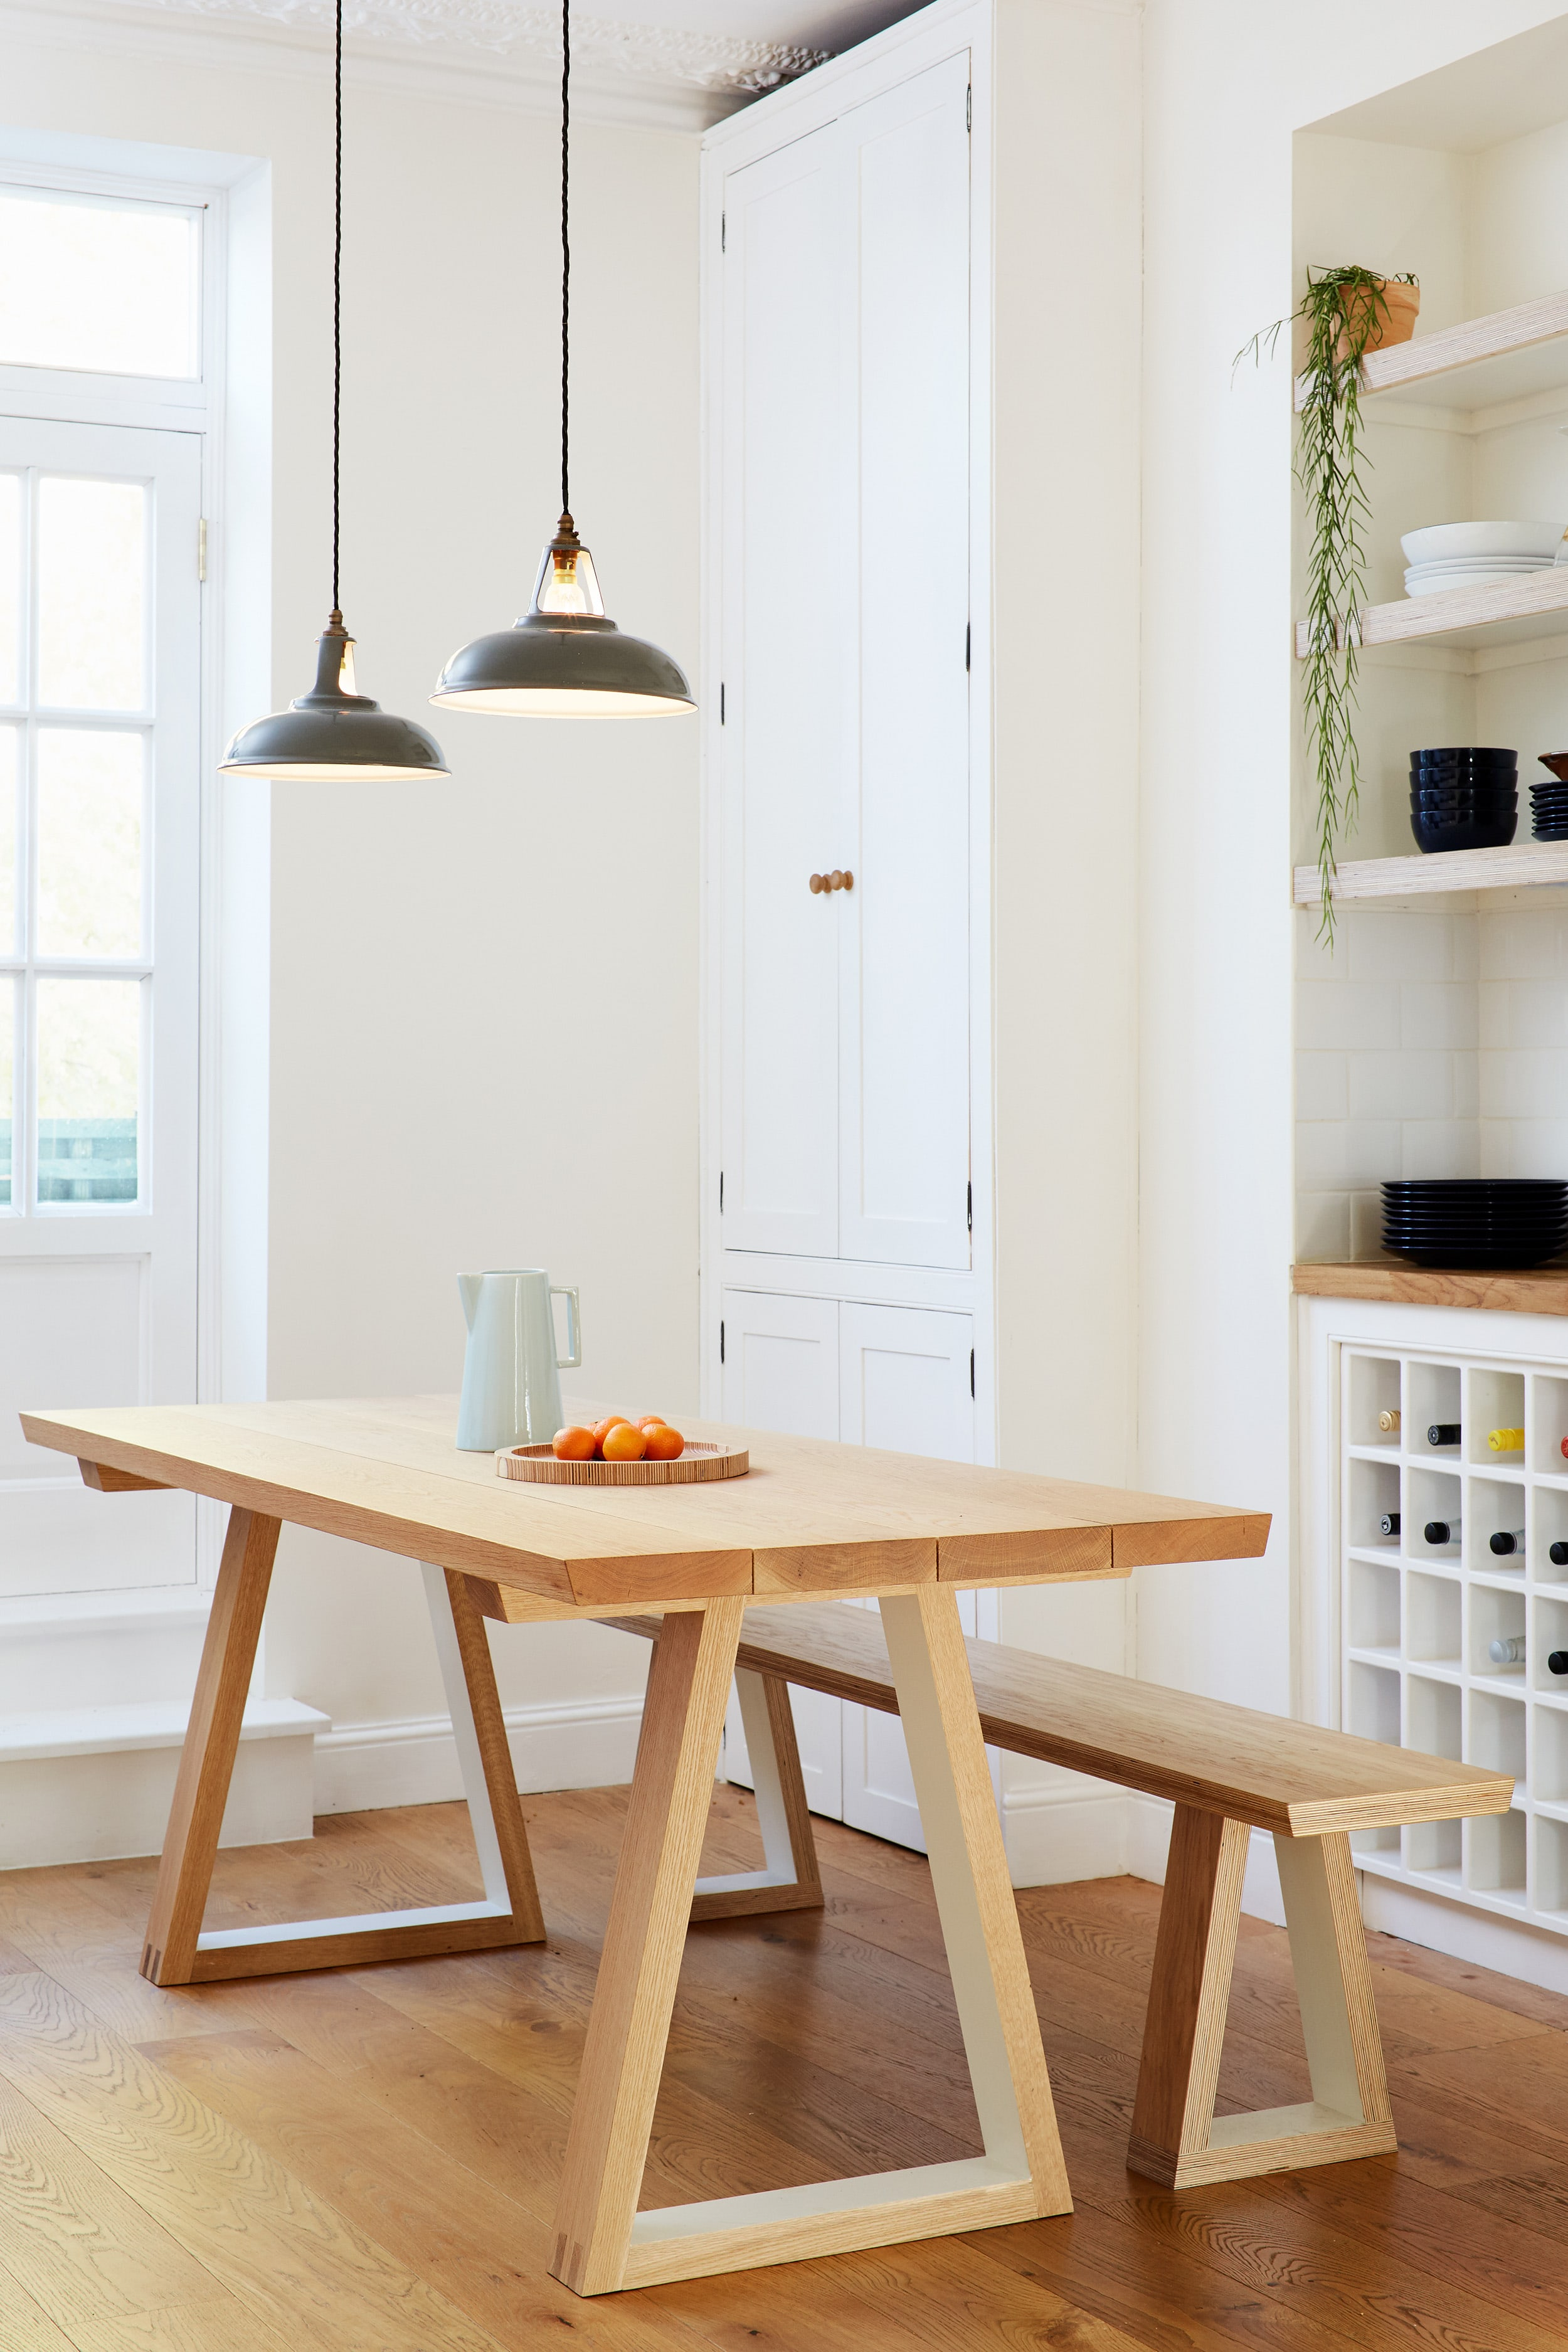 Cass's beautiful plywood and solid oak table was made specifically for her kitchen.